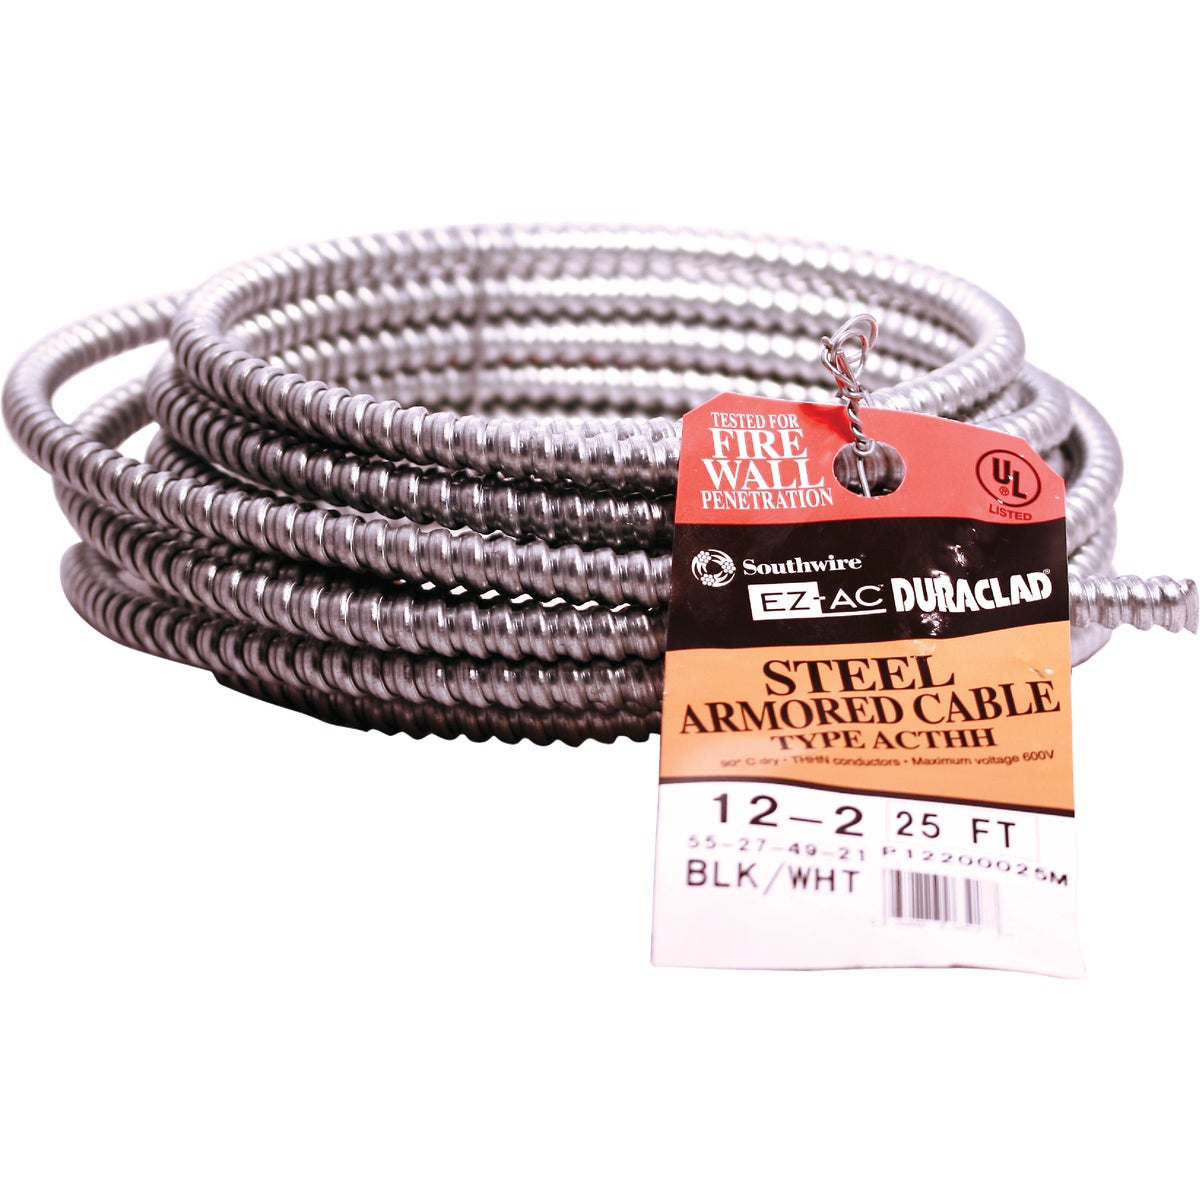 25' 12/2 STL ARMR CABLE - 55274921 by Southwire Company